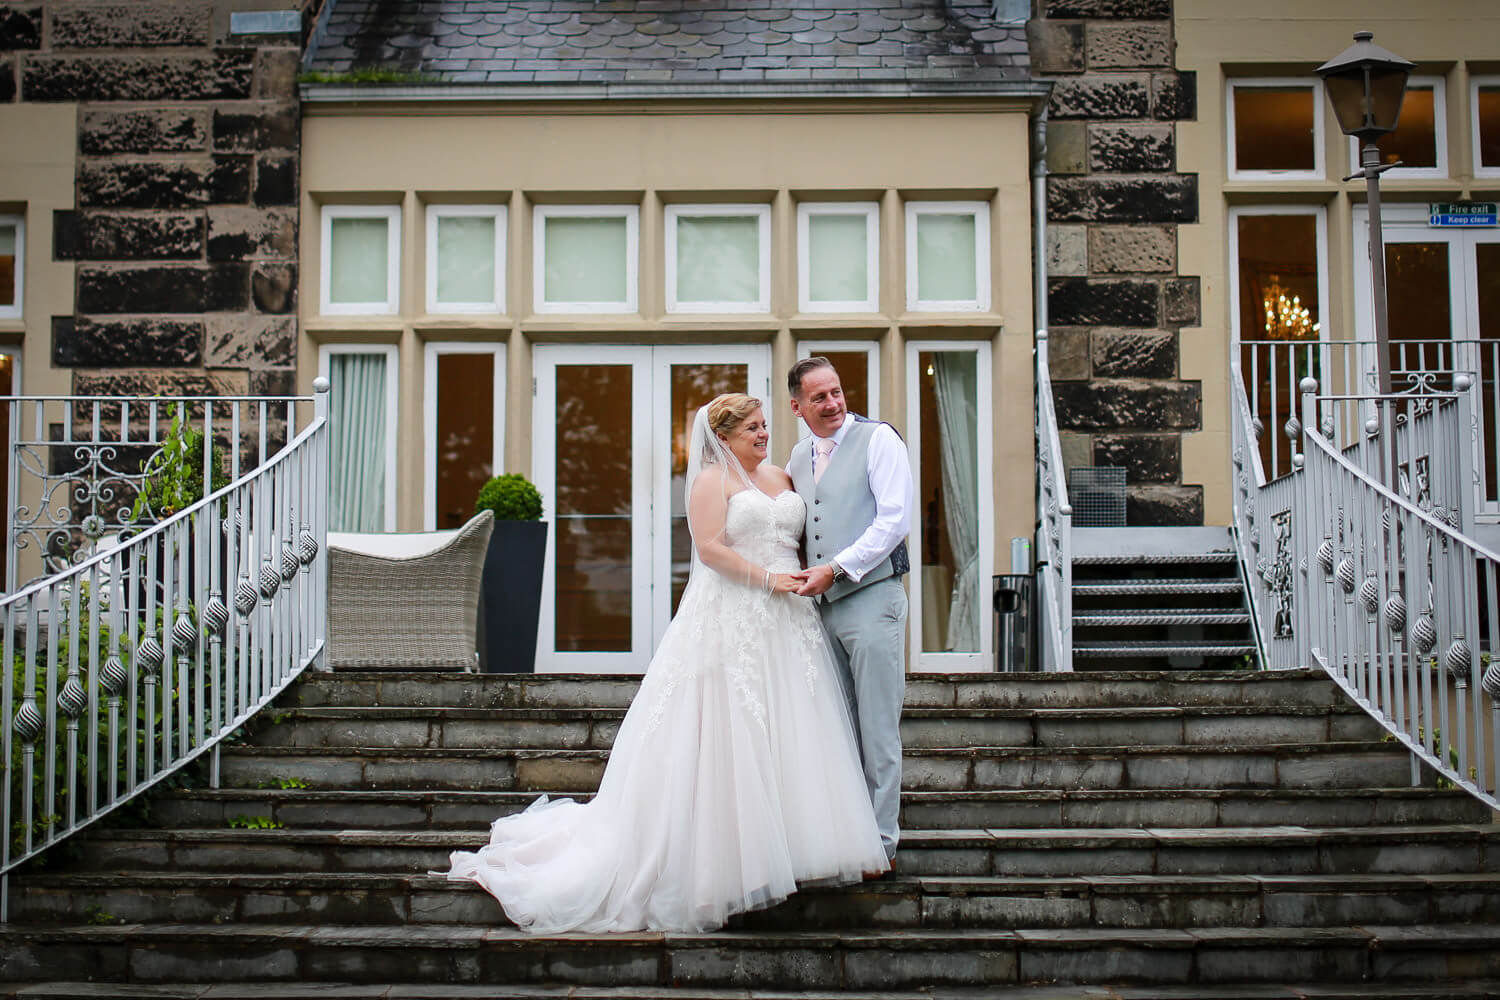 Bride and groom on steps of West tower wedding venue